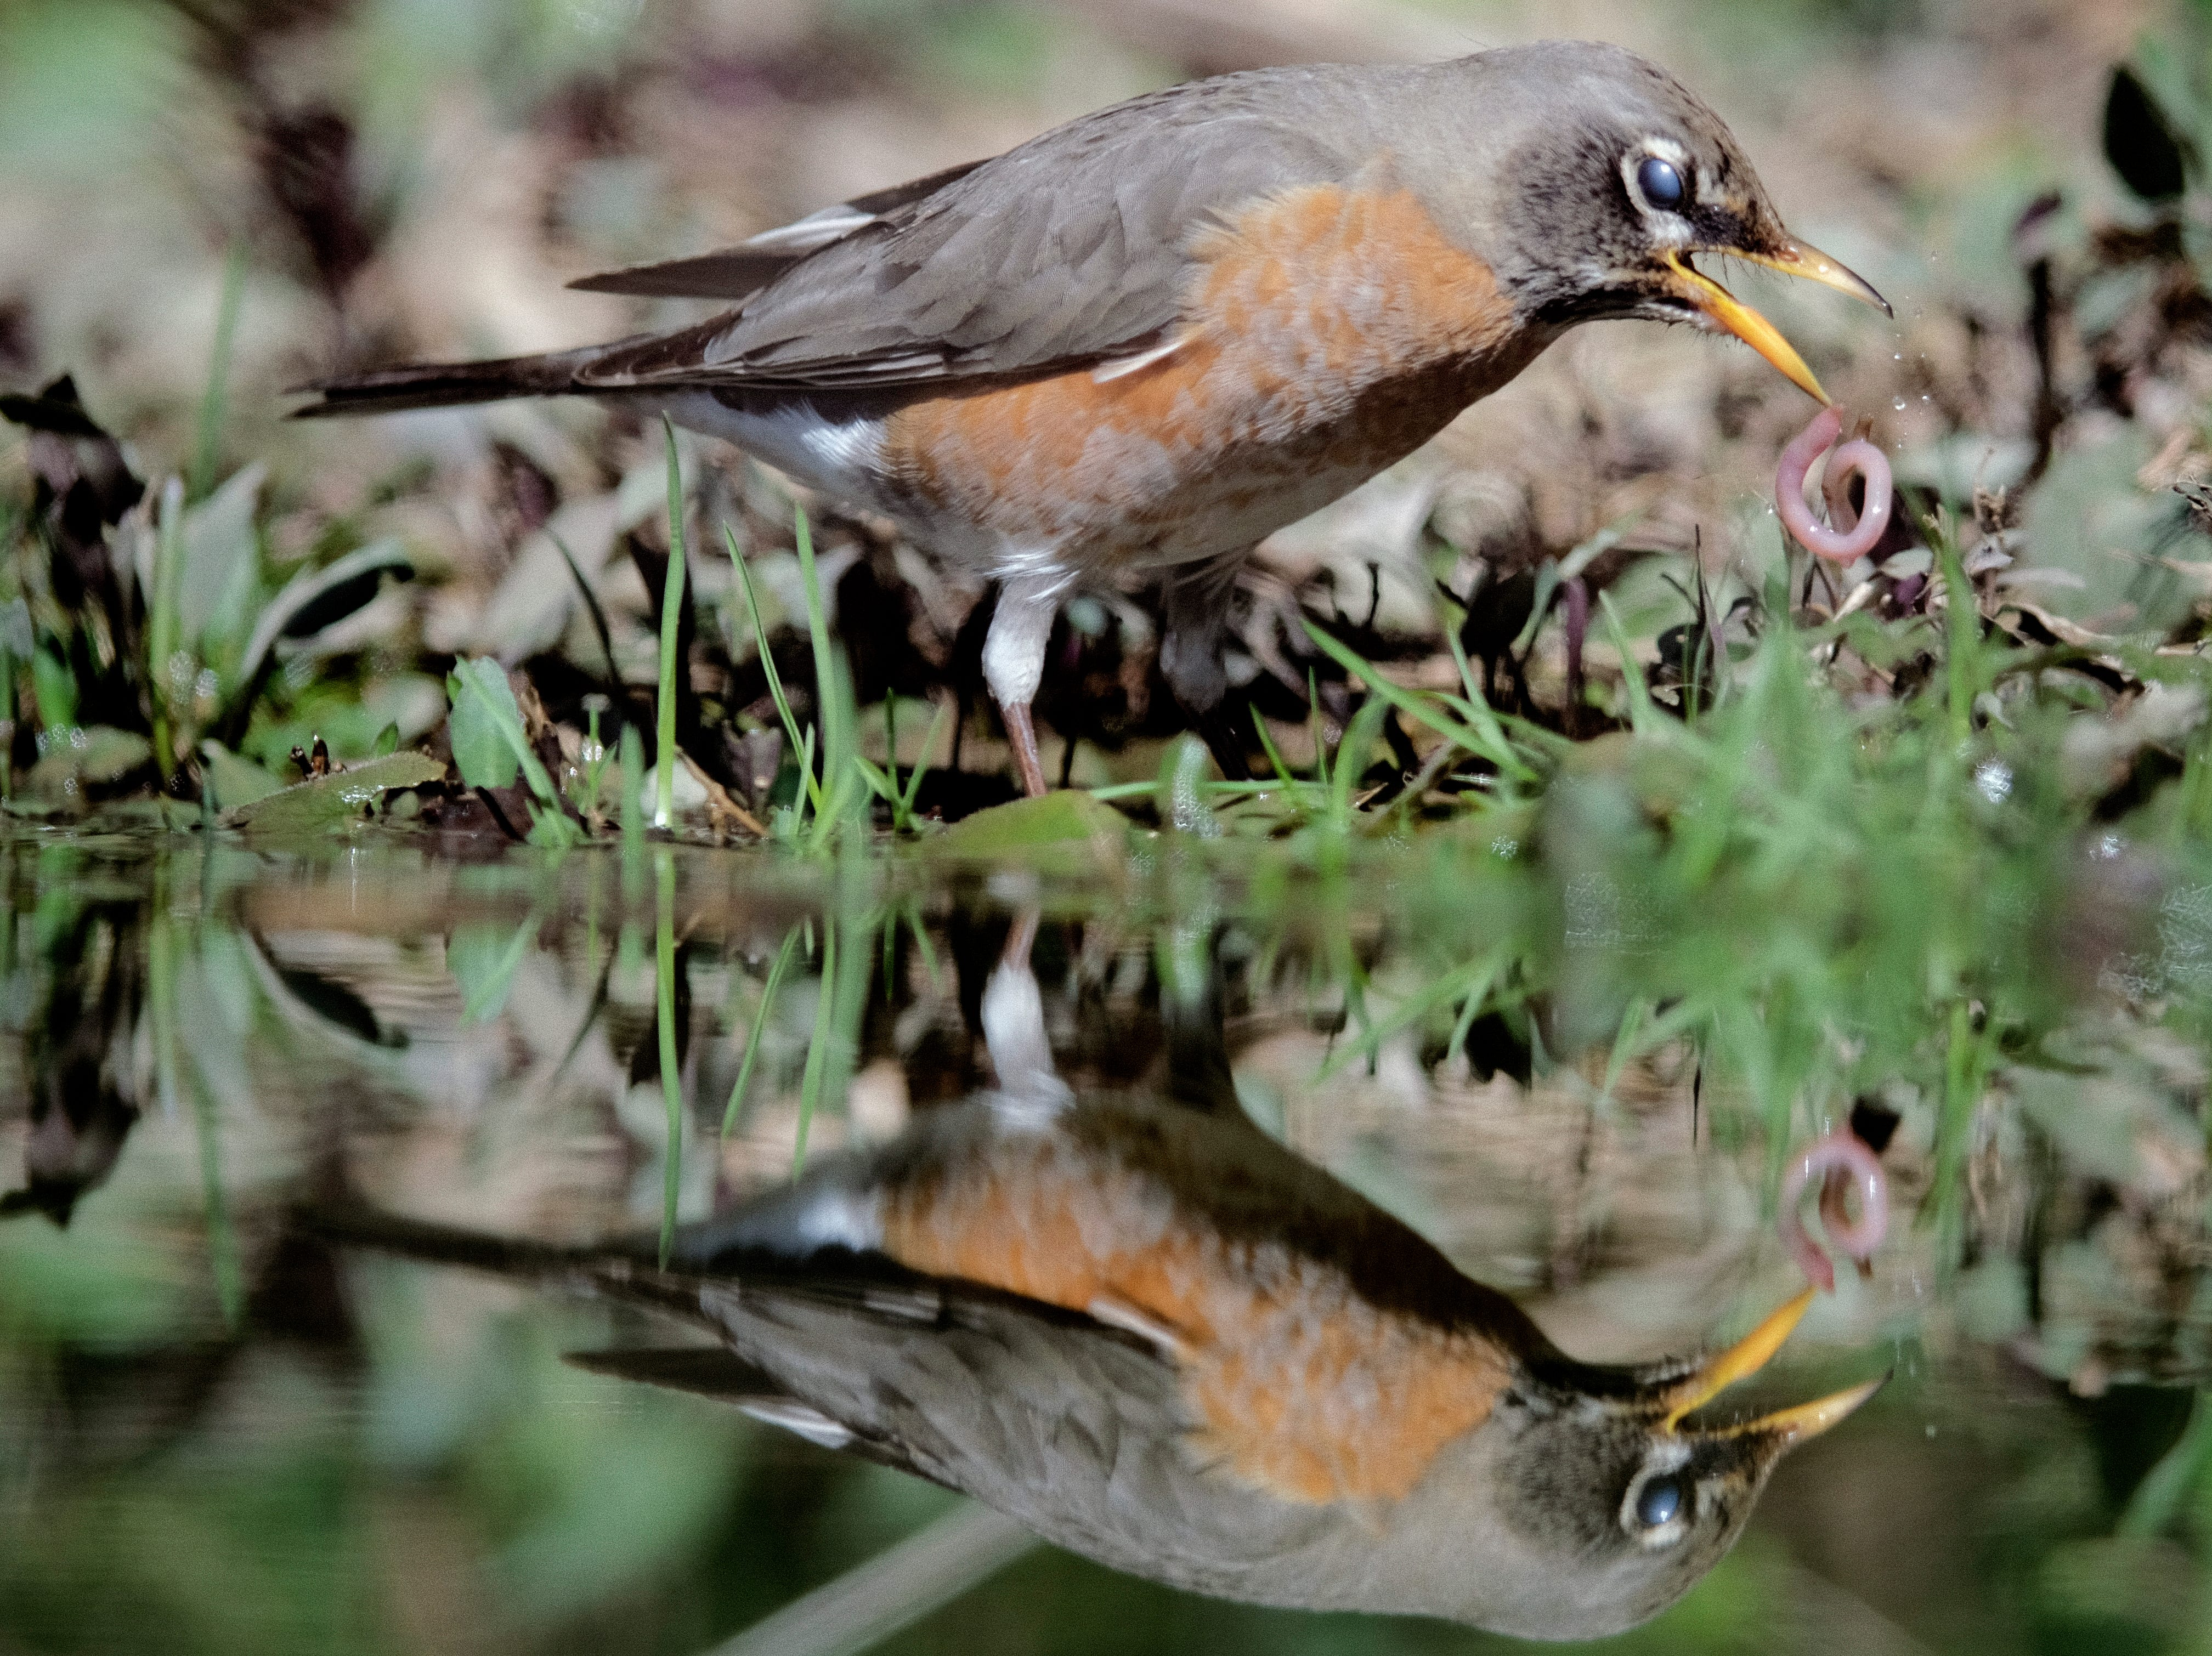 An American robin pulls an earthworm from a puddle of water in Knoxville, Tennessee on Monday, February 25, 2019. American robins feed on a mixture of fruits, berries, earthworms and insects.